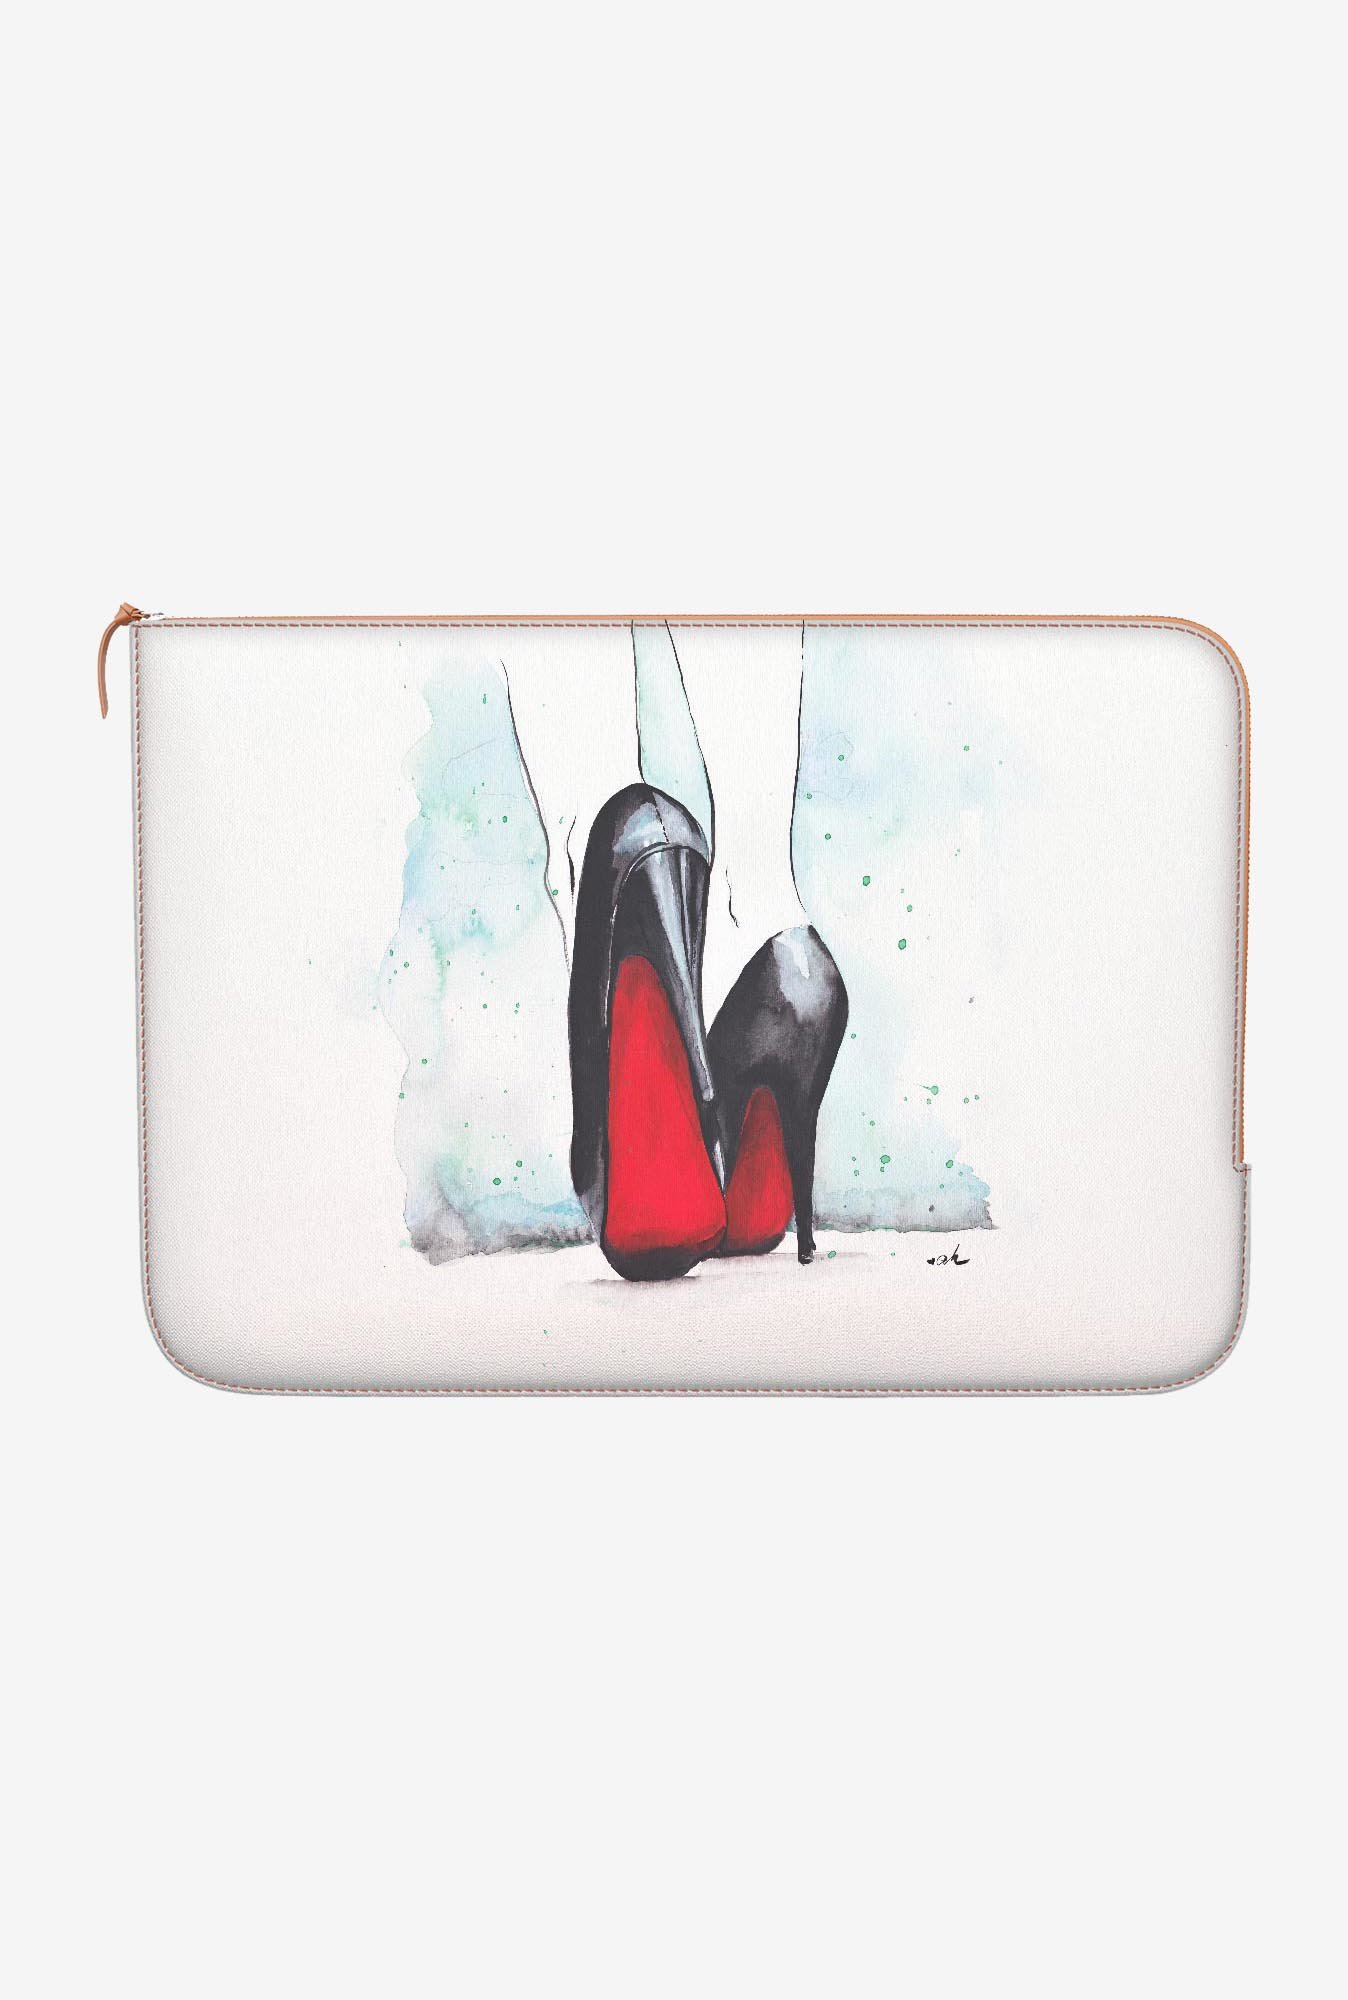 DailyObjects Melt The Snow MacBook Air 11 Zippered Sleeve